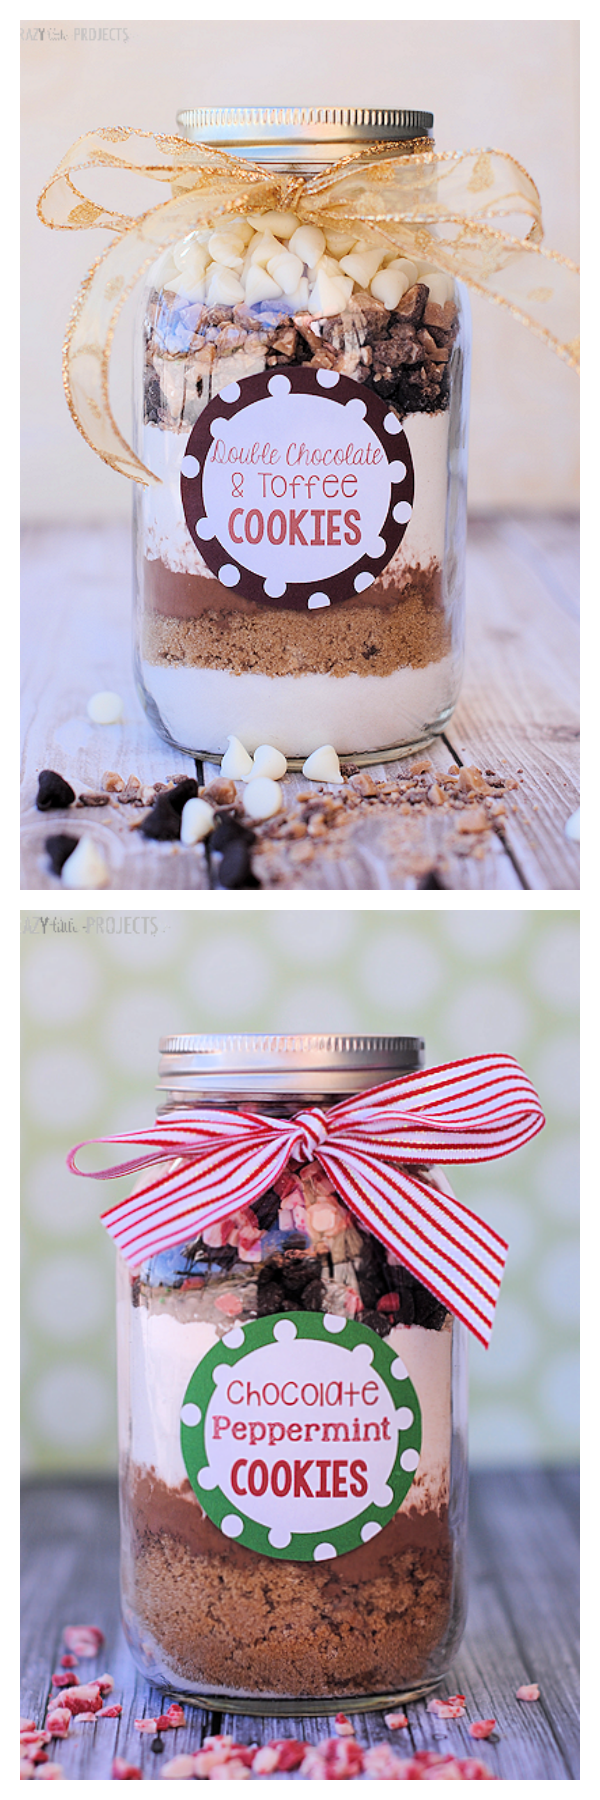 2 Cookies in a Jar Recipes-Great Gift Idea!